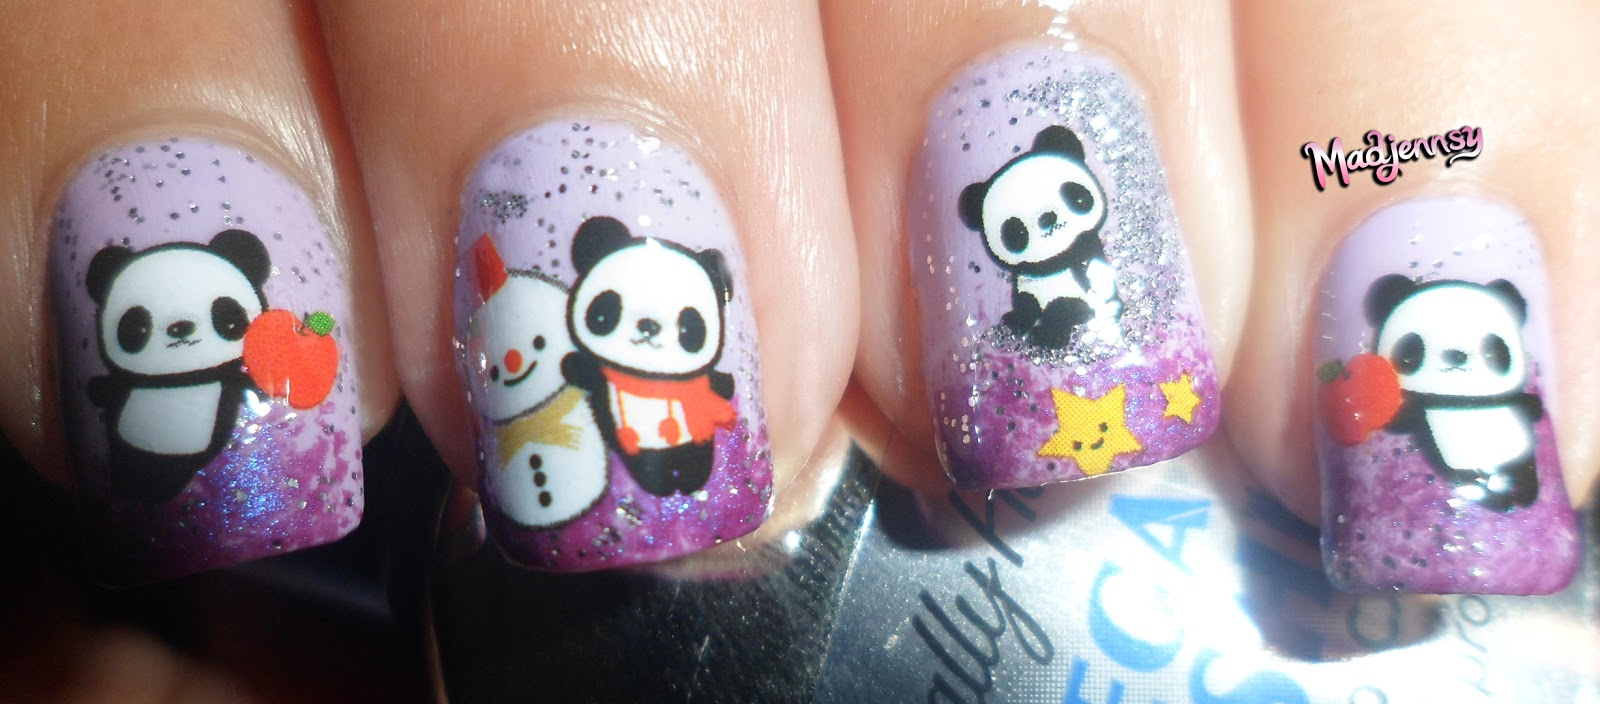 Cute panda nails bornpretty store water decal review tutorial cute panda nails bornpretty store water decal review tutorial prinsesfo Images